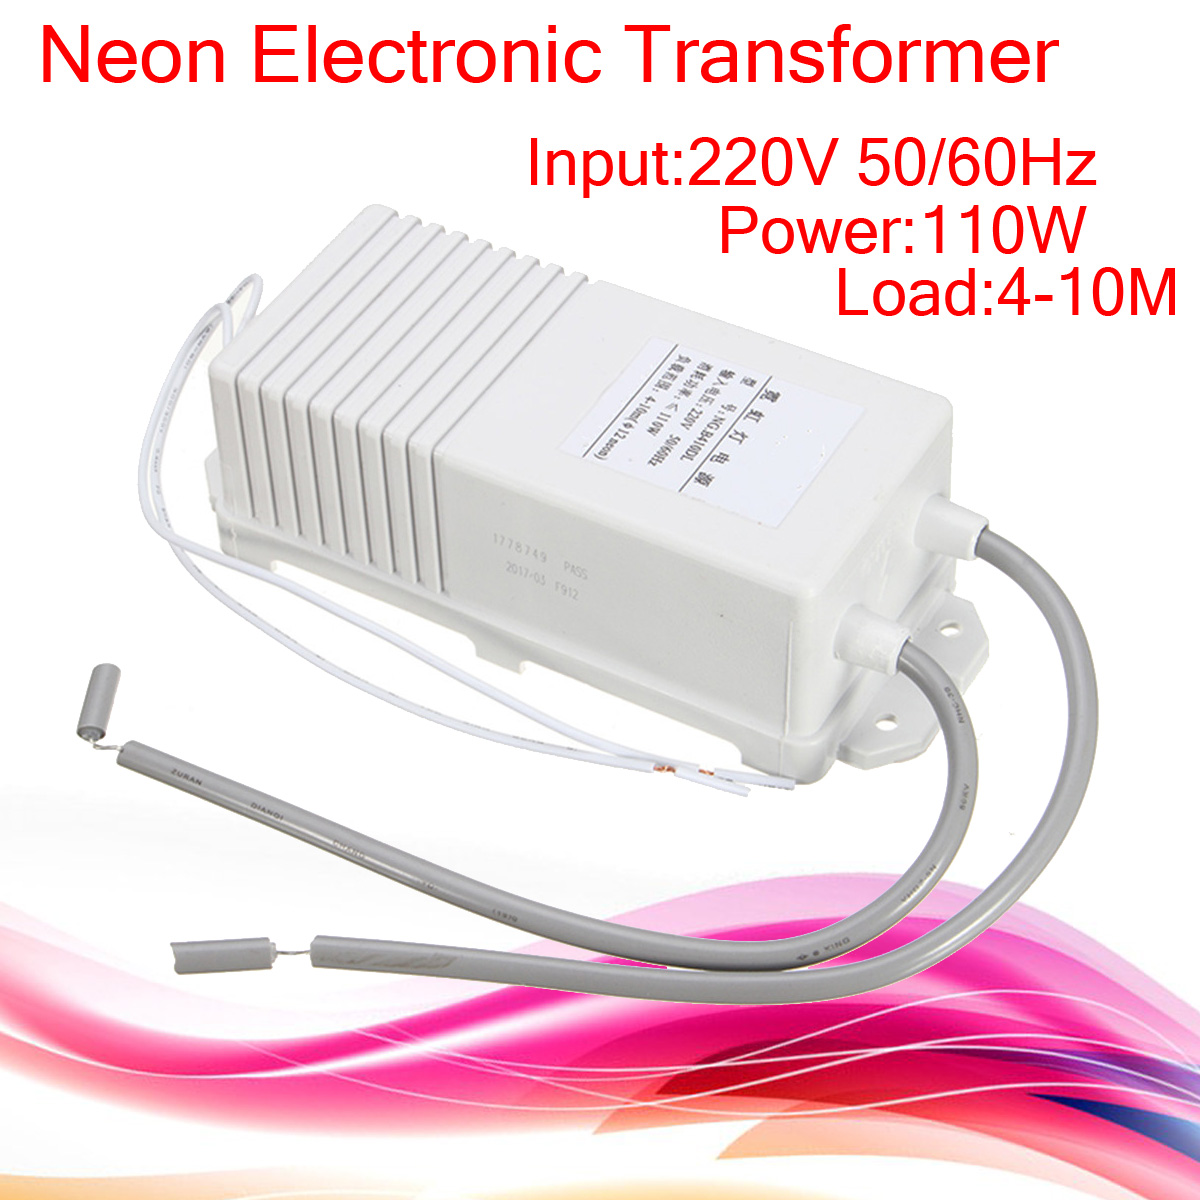 10000V 10KV 30mA 110W 10M Electronic Neon Transformer Rectifier Power Supply